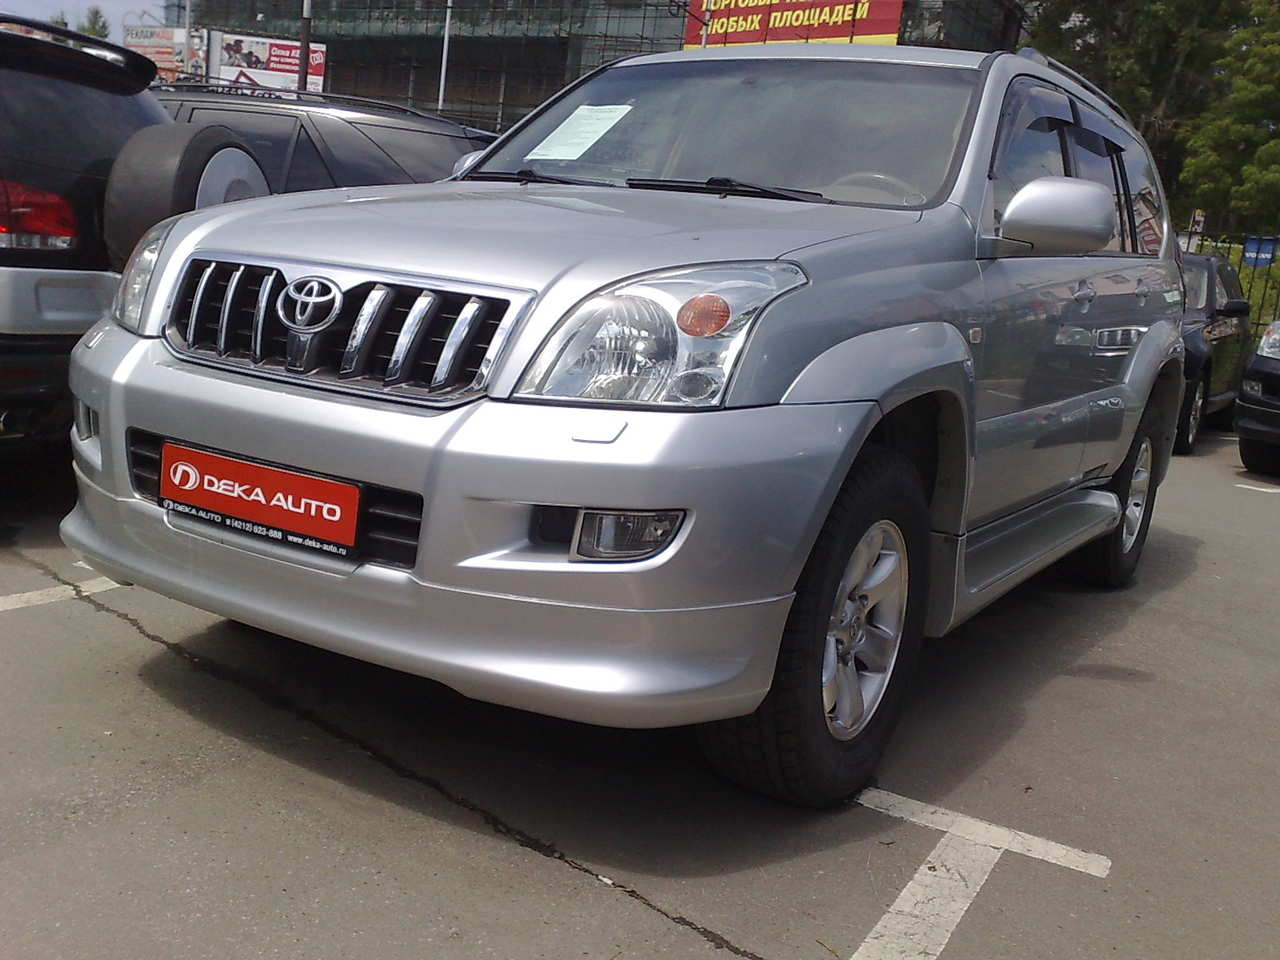 2005 toyota land cruiser prado pictures gasoline automatic for sale. Black Bedroom Furniture Sets. Home Design Ideas